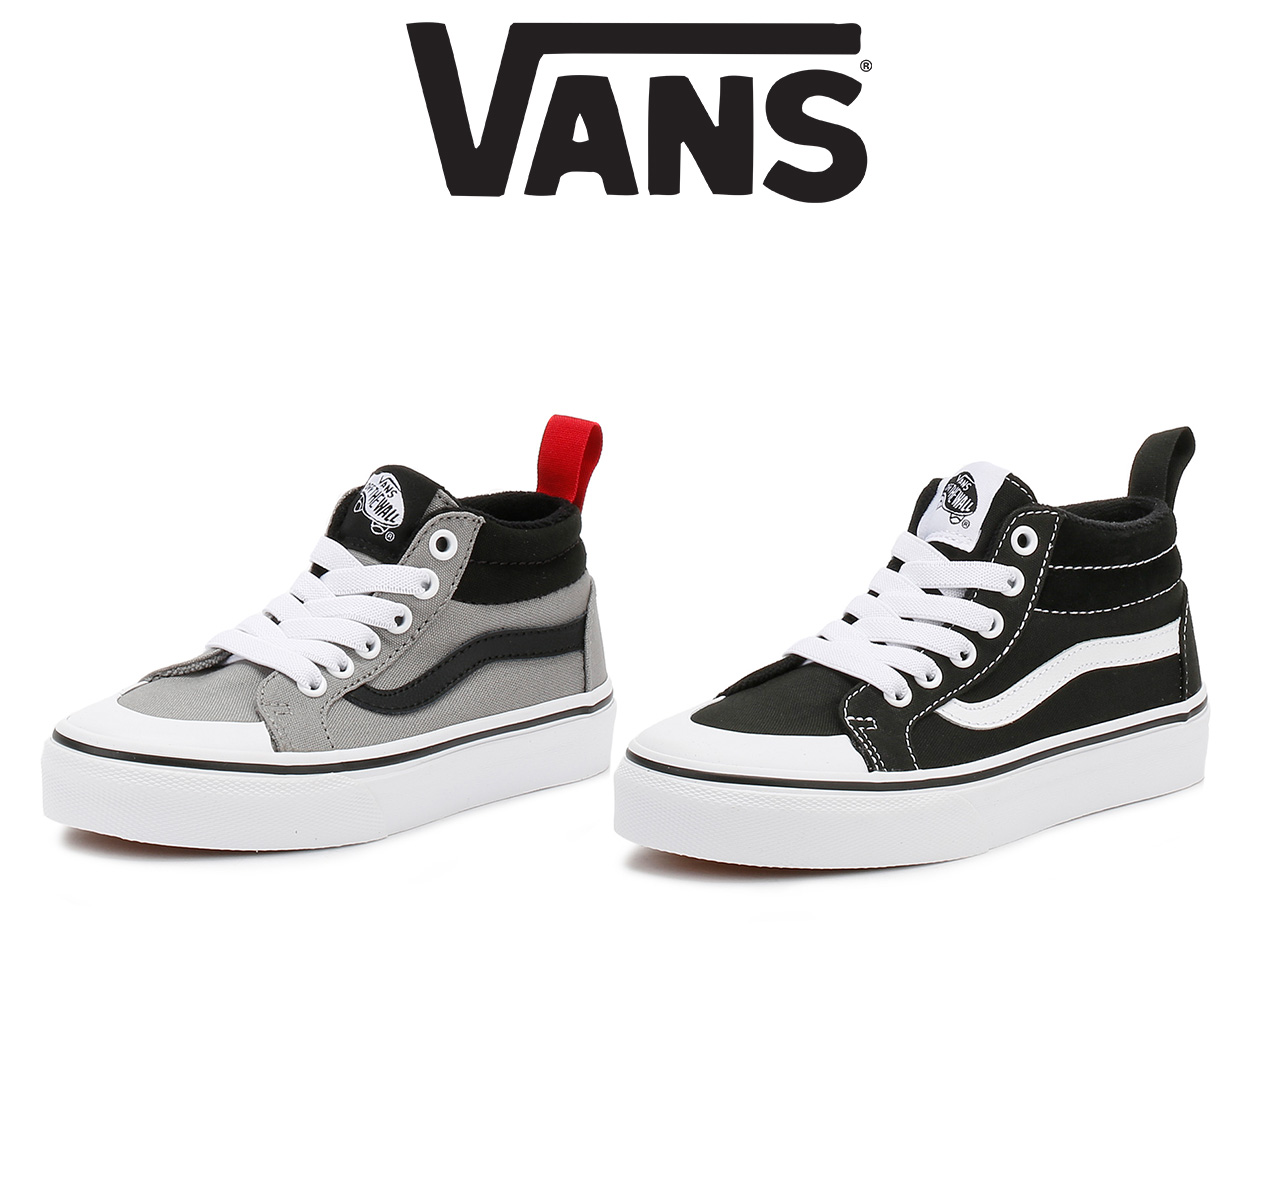 vans mid tops kids 2017   OFF53% Discounts 3af4703f2